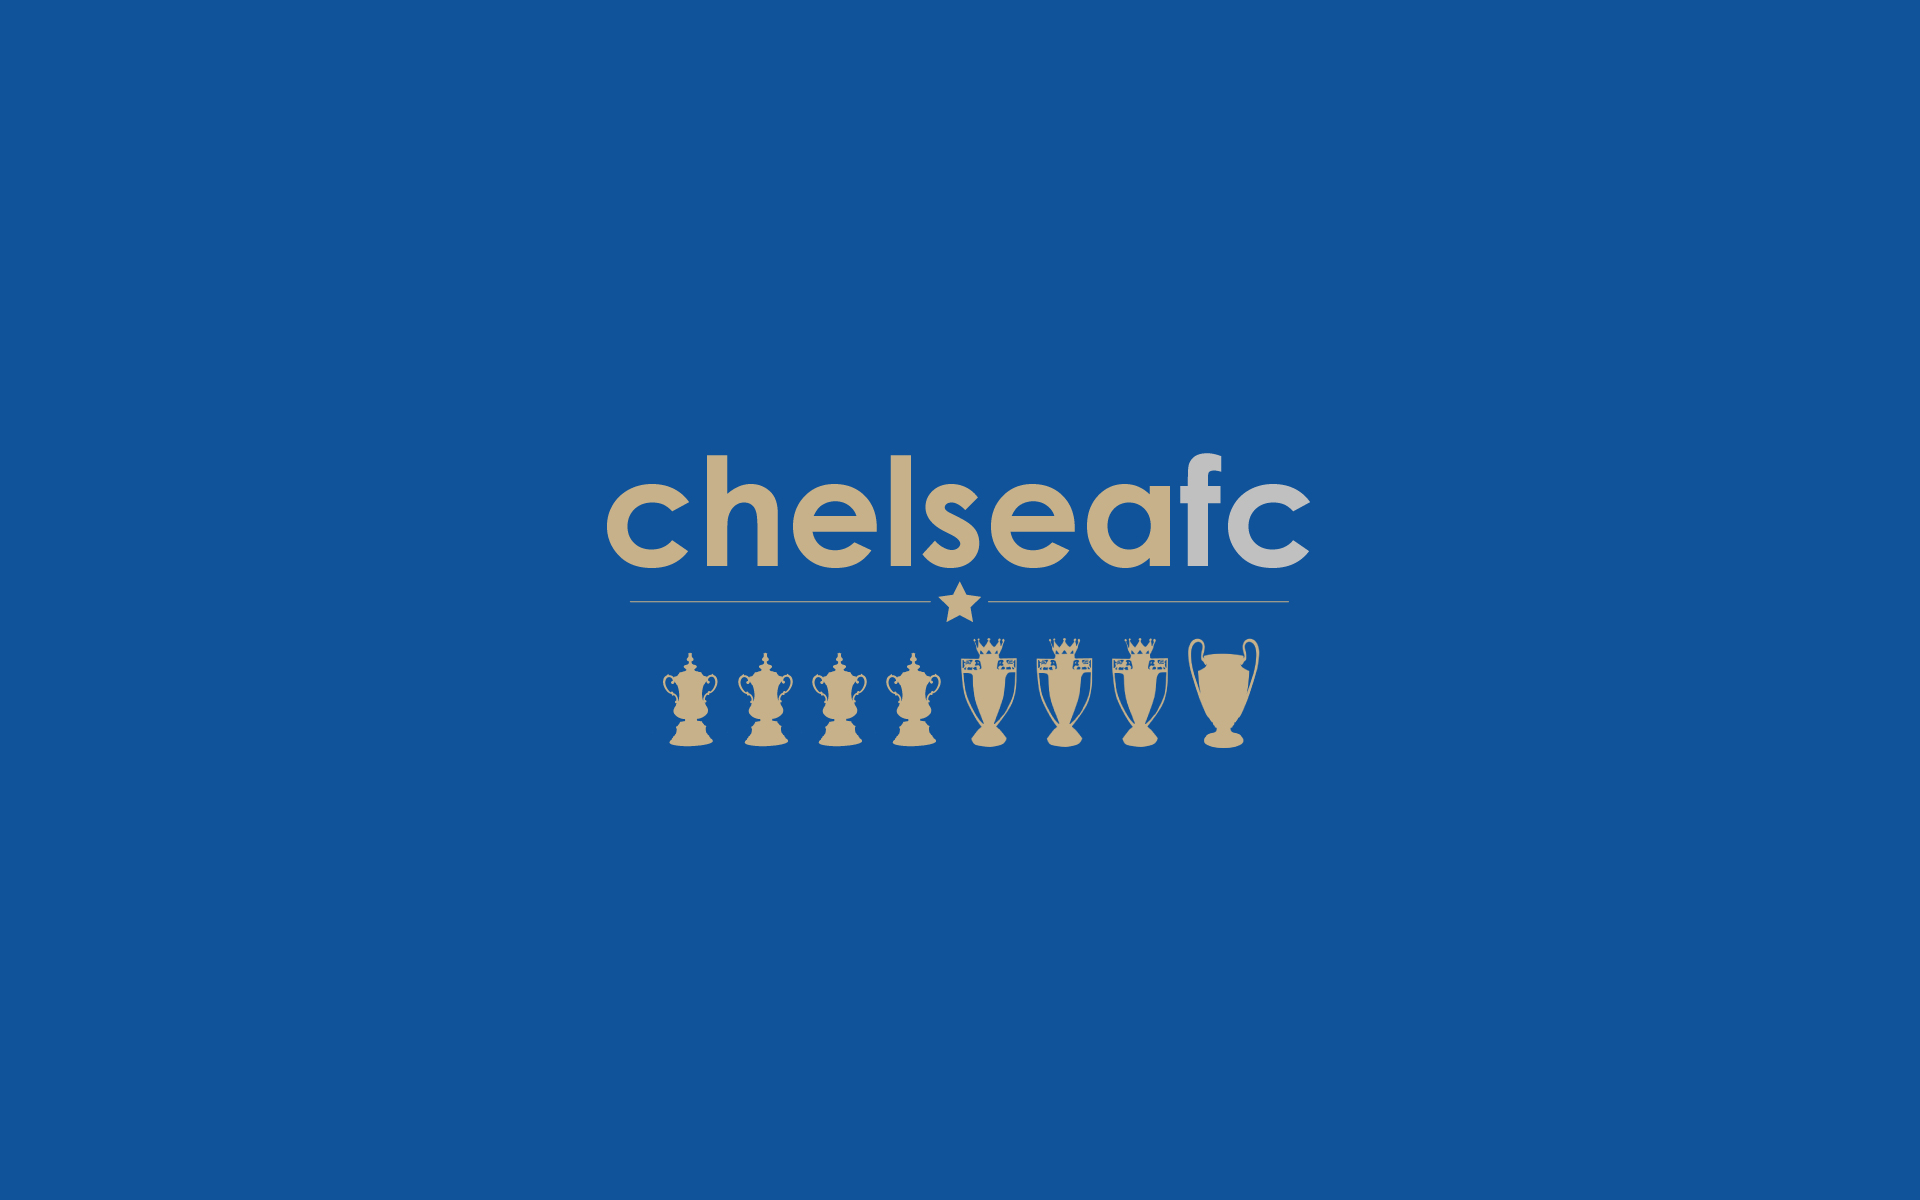 can anyone make rchelseas page banner into a wallpaper chelseafc 1920x1200